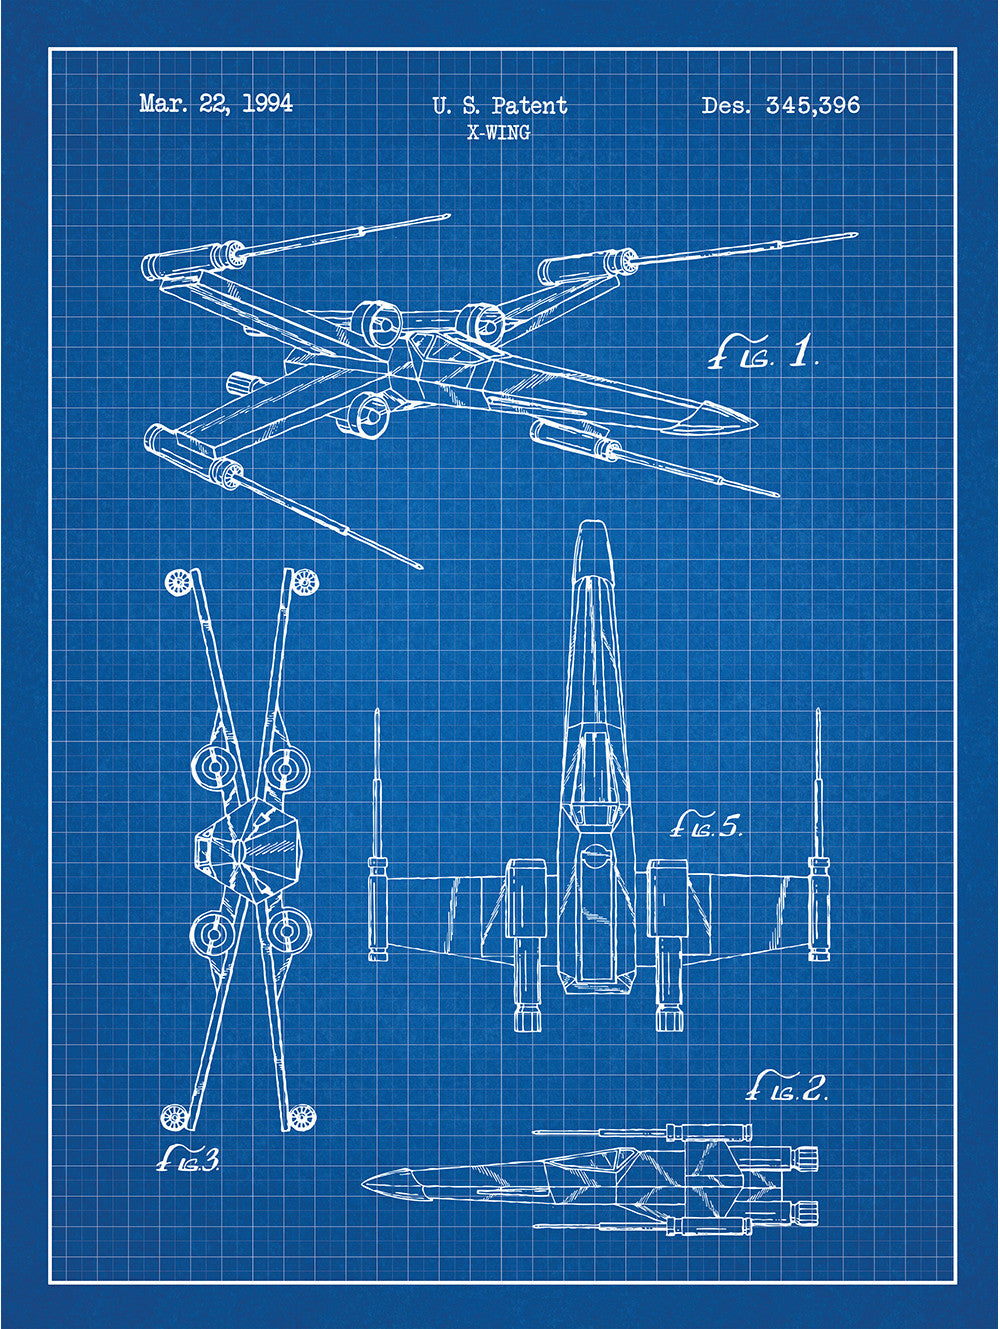 (U8) - Star Wars Vehicles: X-Wing